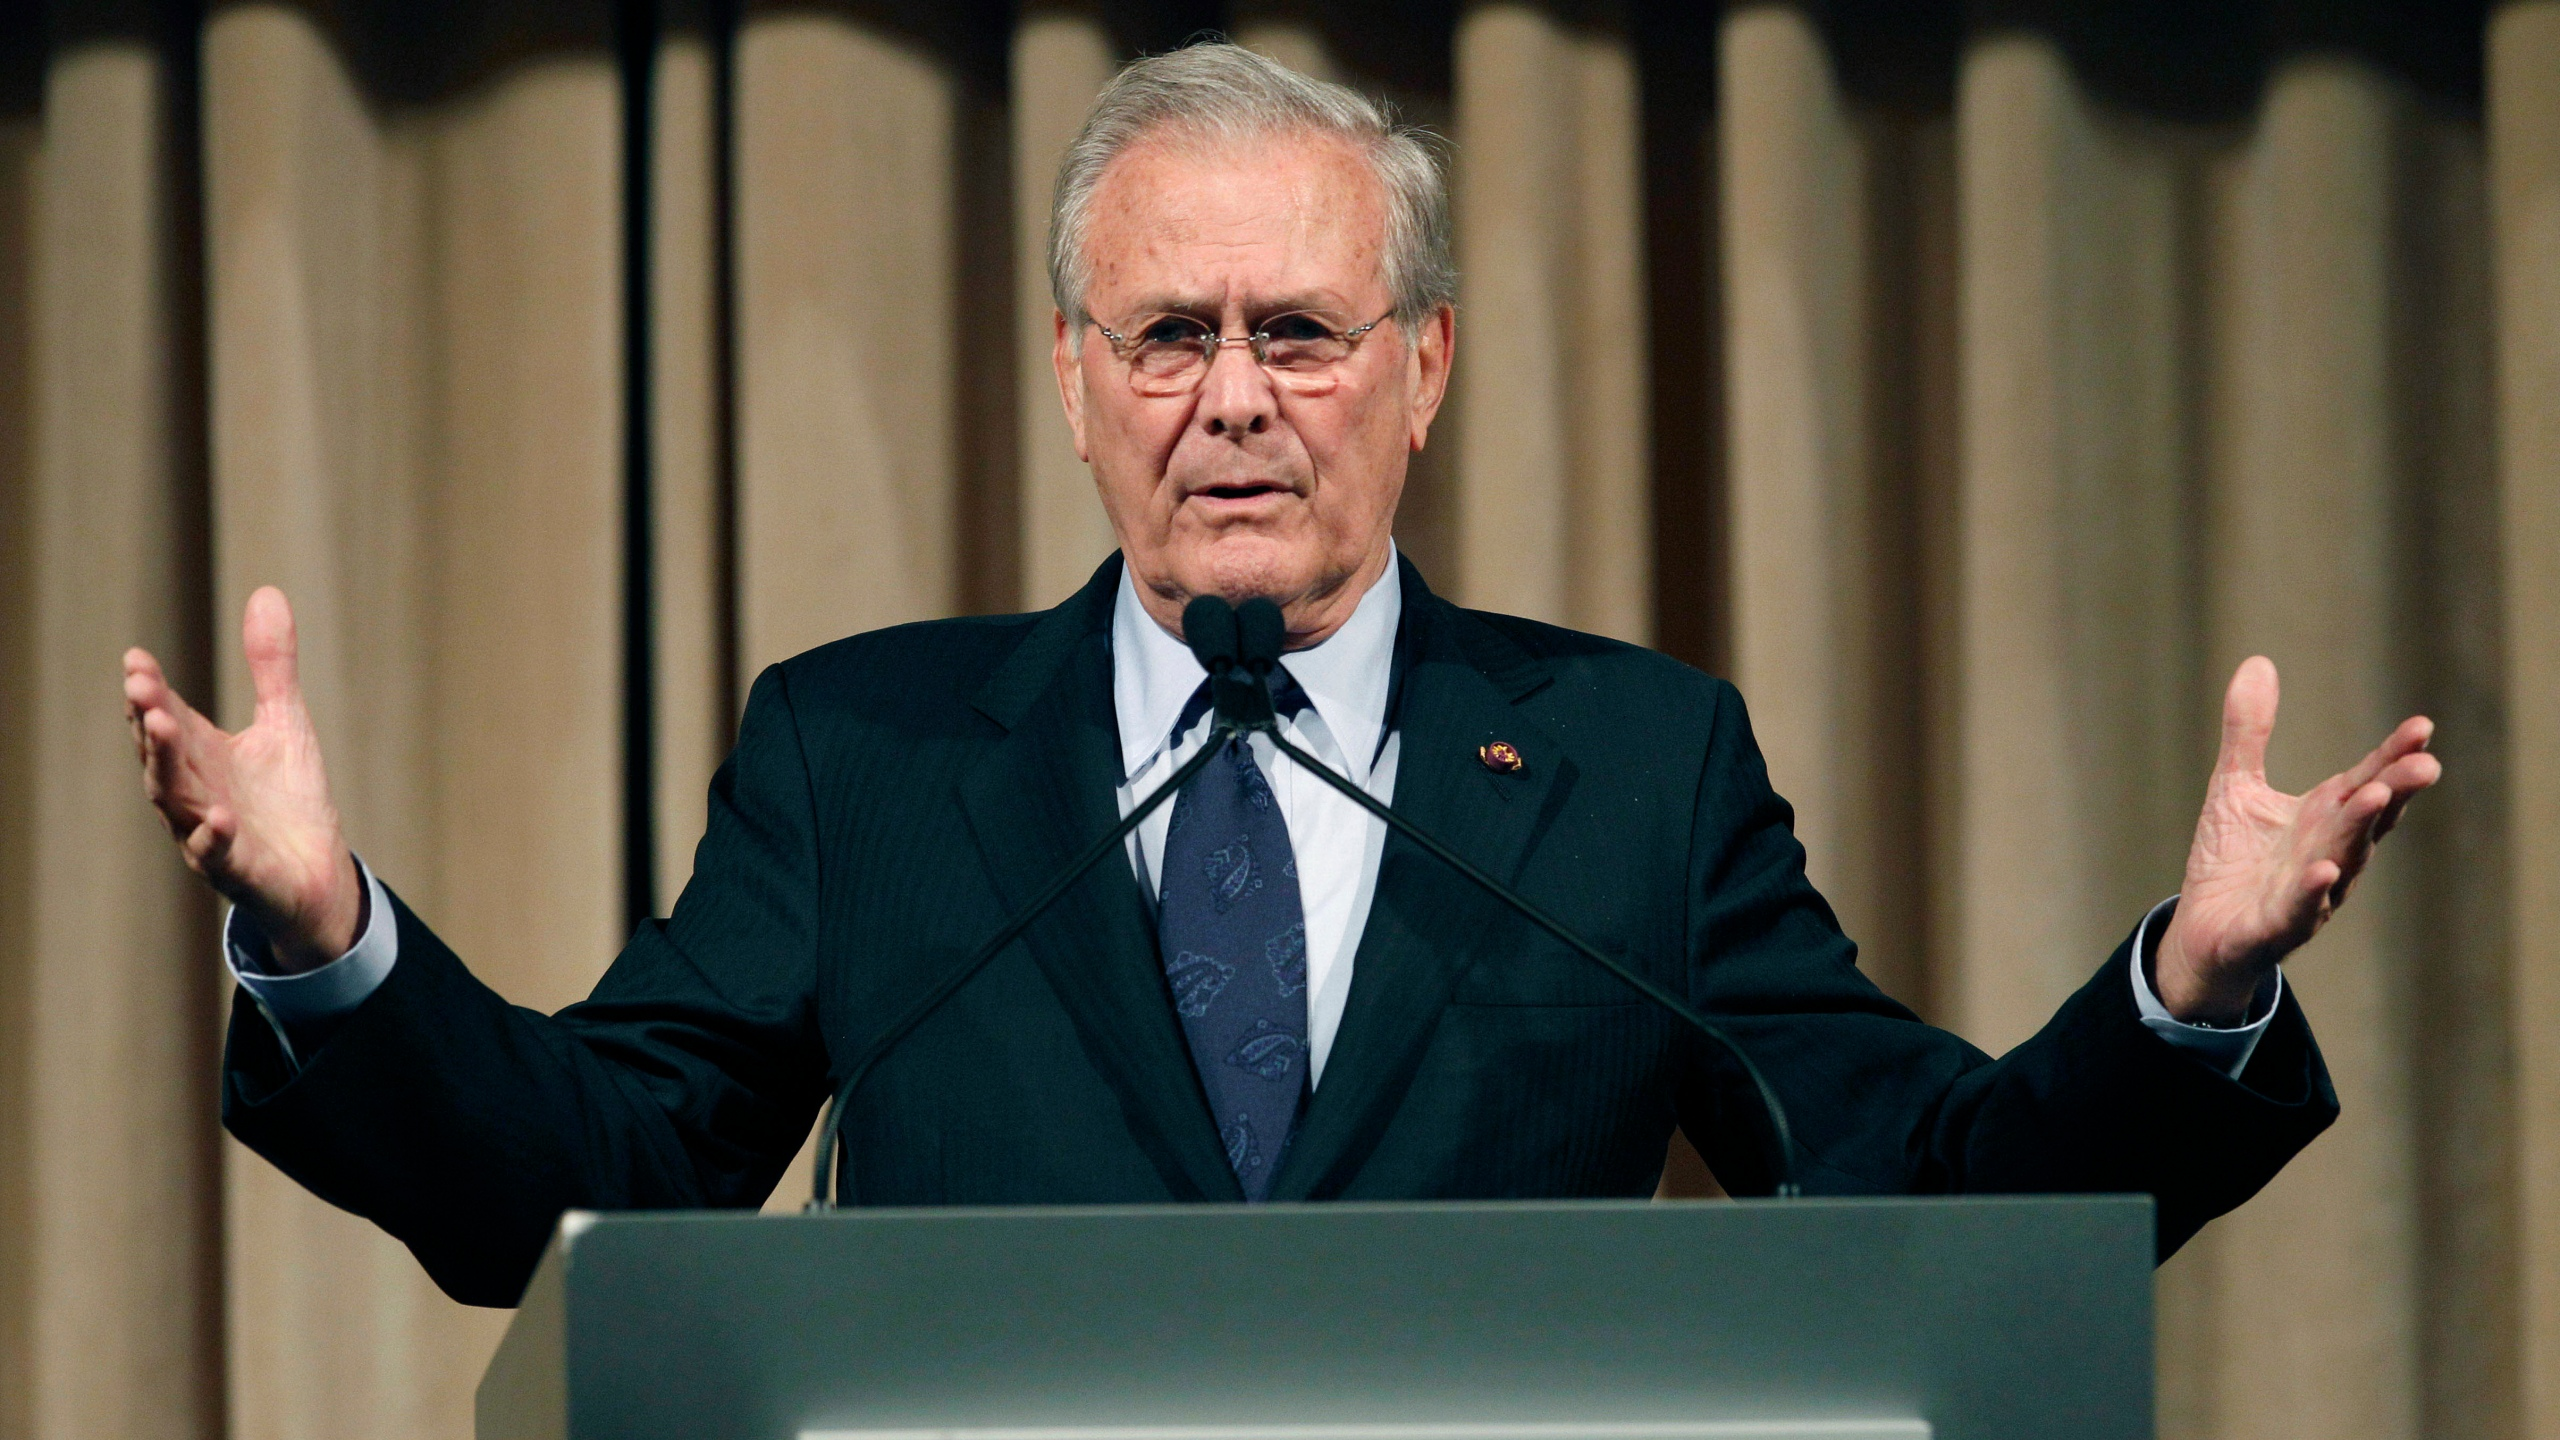 In this Oct. 11, 2011, file photo, former U.S. Secretary of Defense Donald Rumsfeld speaks to politicians and academics during a luncheon on security in rising Asia, in Taipei, Taiwan. The family of Rumsfeld says he has died. He was 88. (AP Photo/Wally Santana, File)